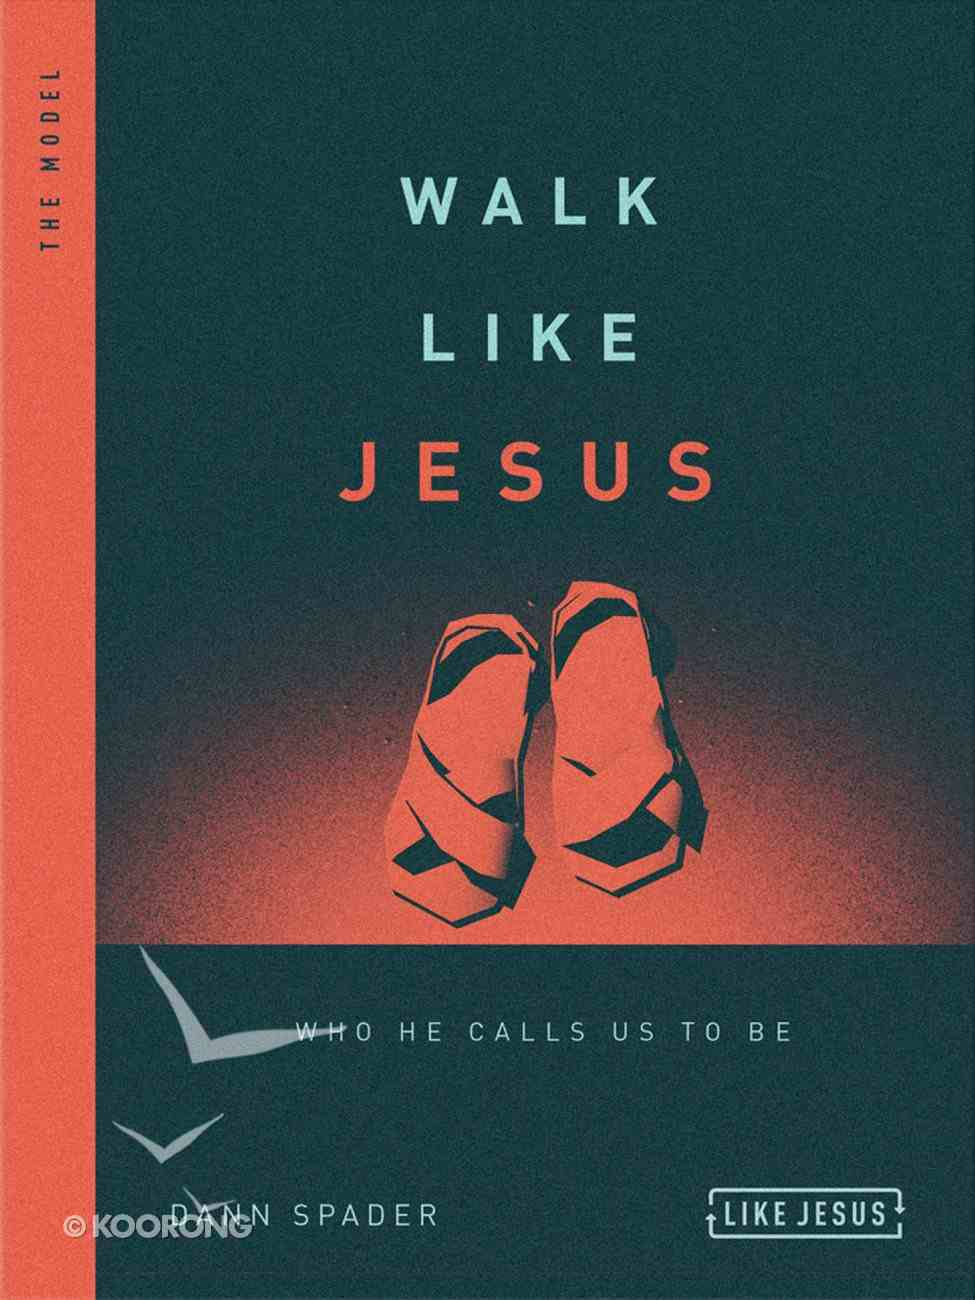 Walk Like Jesus: Who He Calls Us to Be: The Model (Like Jesus Series) Paperback